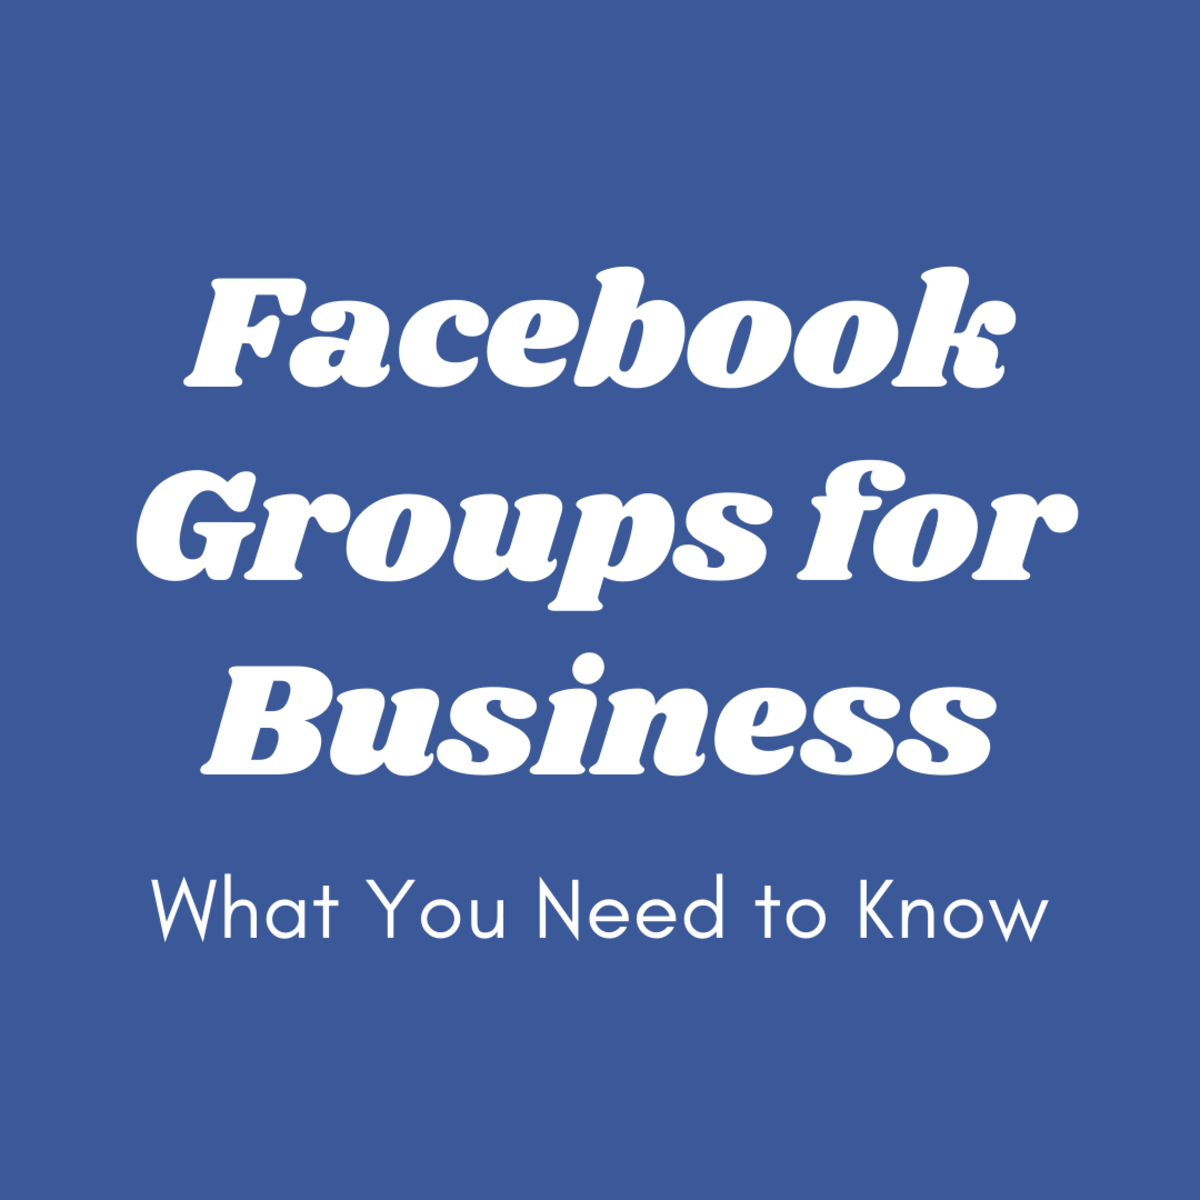 Facebook Groups for Business: What You Need to Know